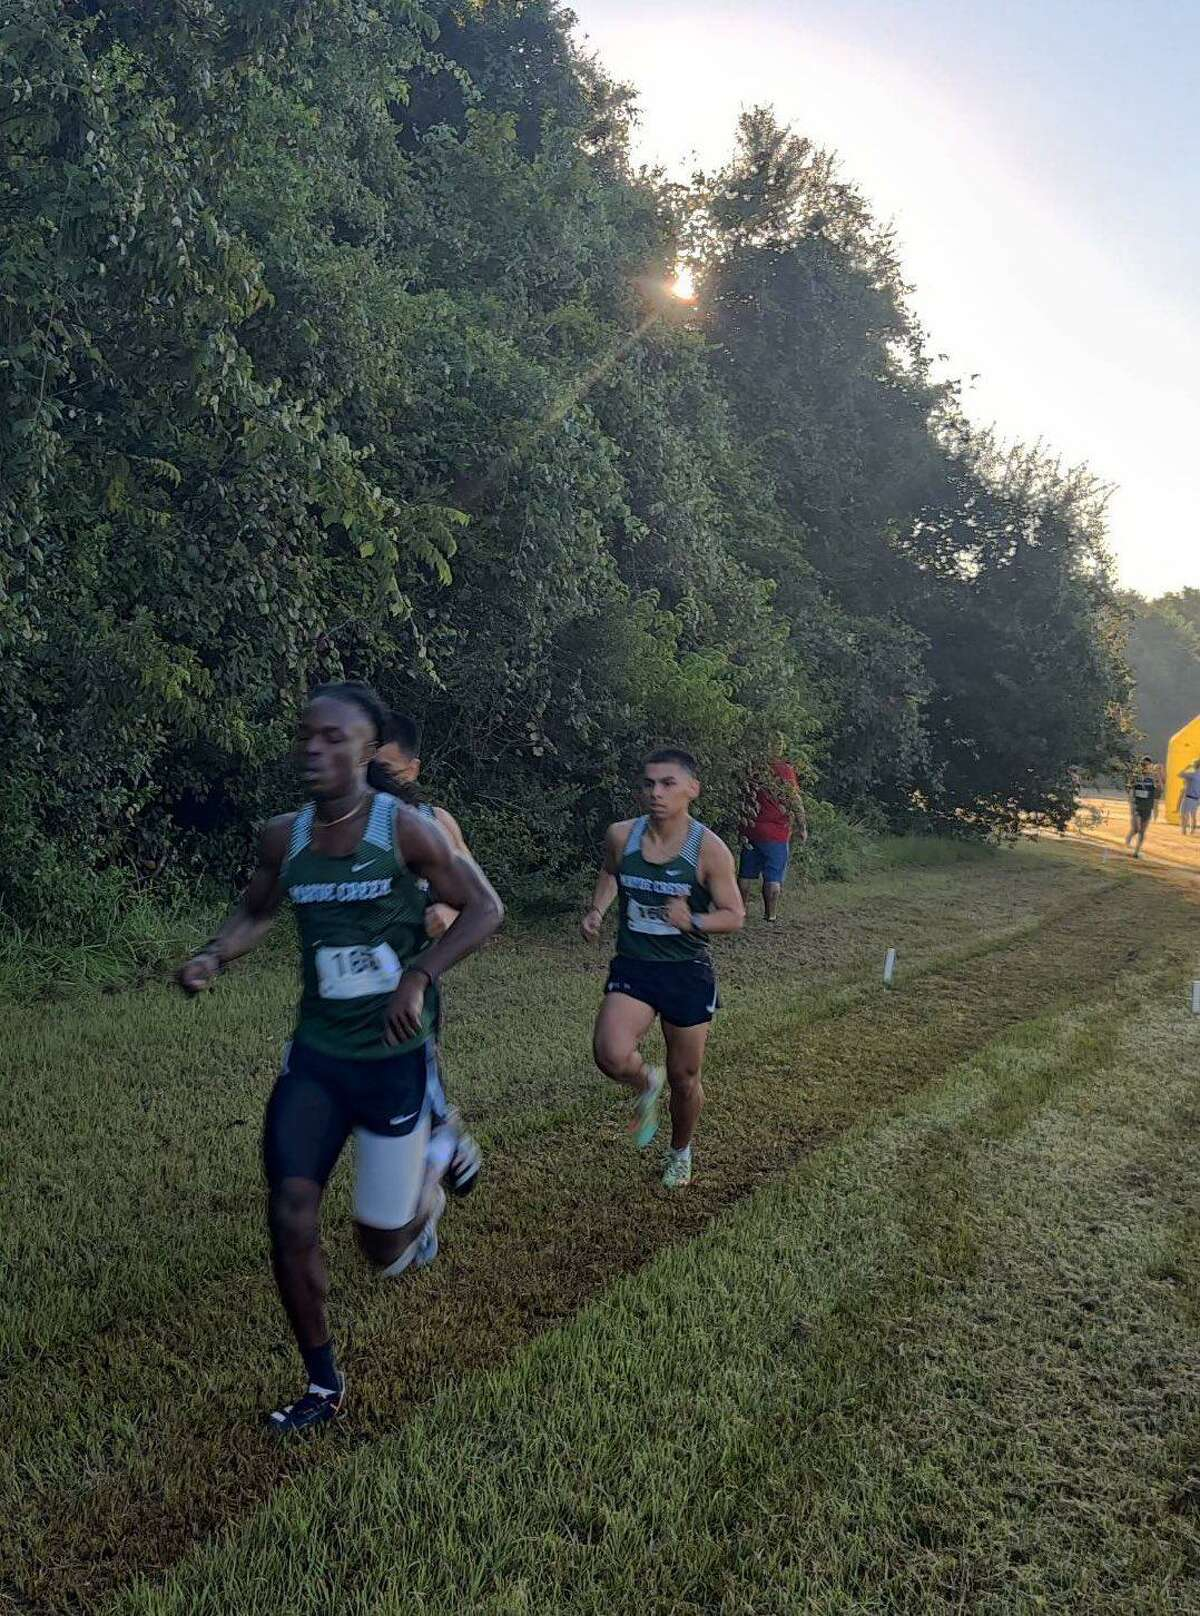 Mayde Creek's David Livingston won the five-kilometer varsity race with a time of 16 minutes, 52.8 seconds, followed by teammates Carlos Barrera, Christian Barrera, Anthony Perez and Sam Torres for the team victory at the Mayde Creek XC Invite.